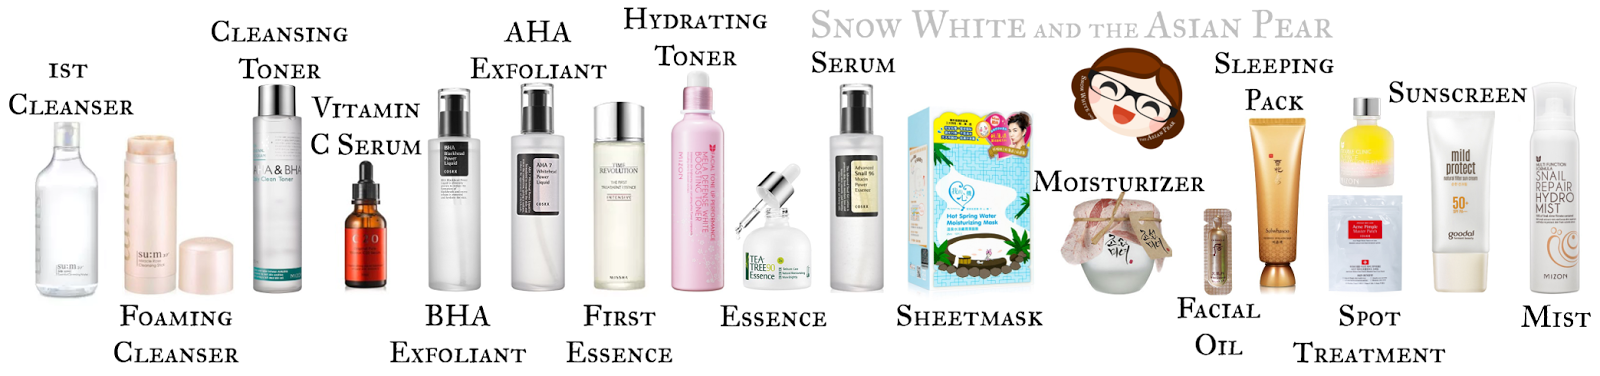 Korean beauty product skincare routine